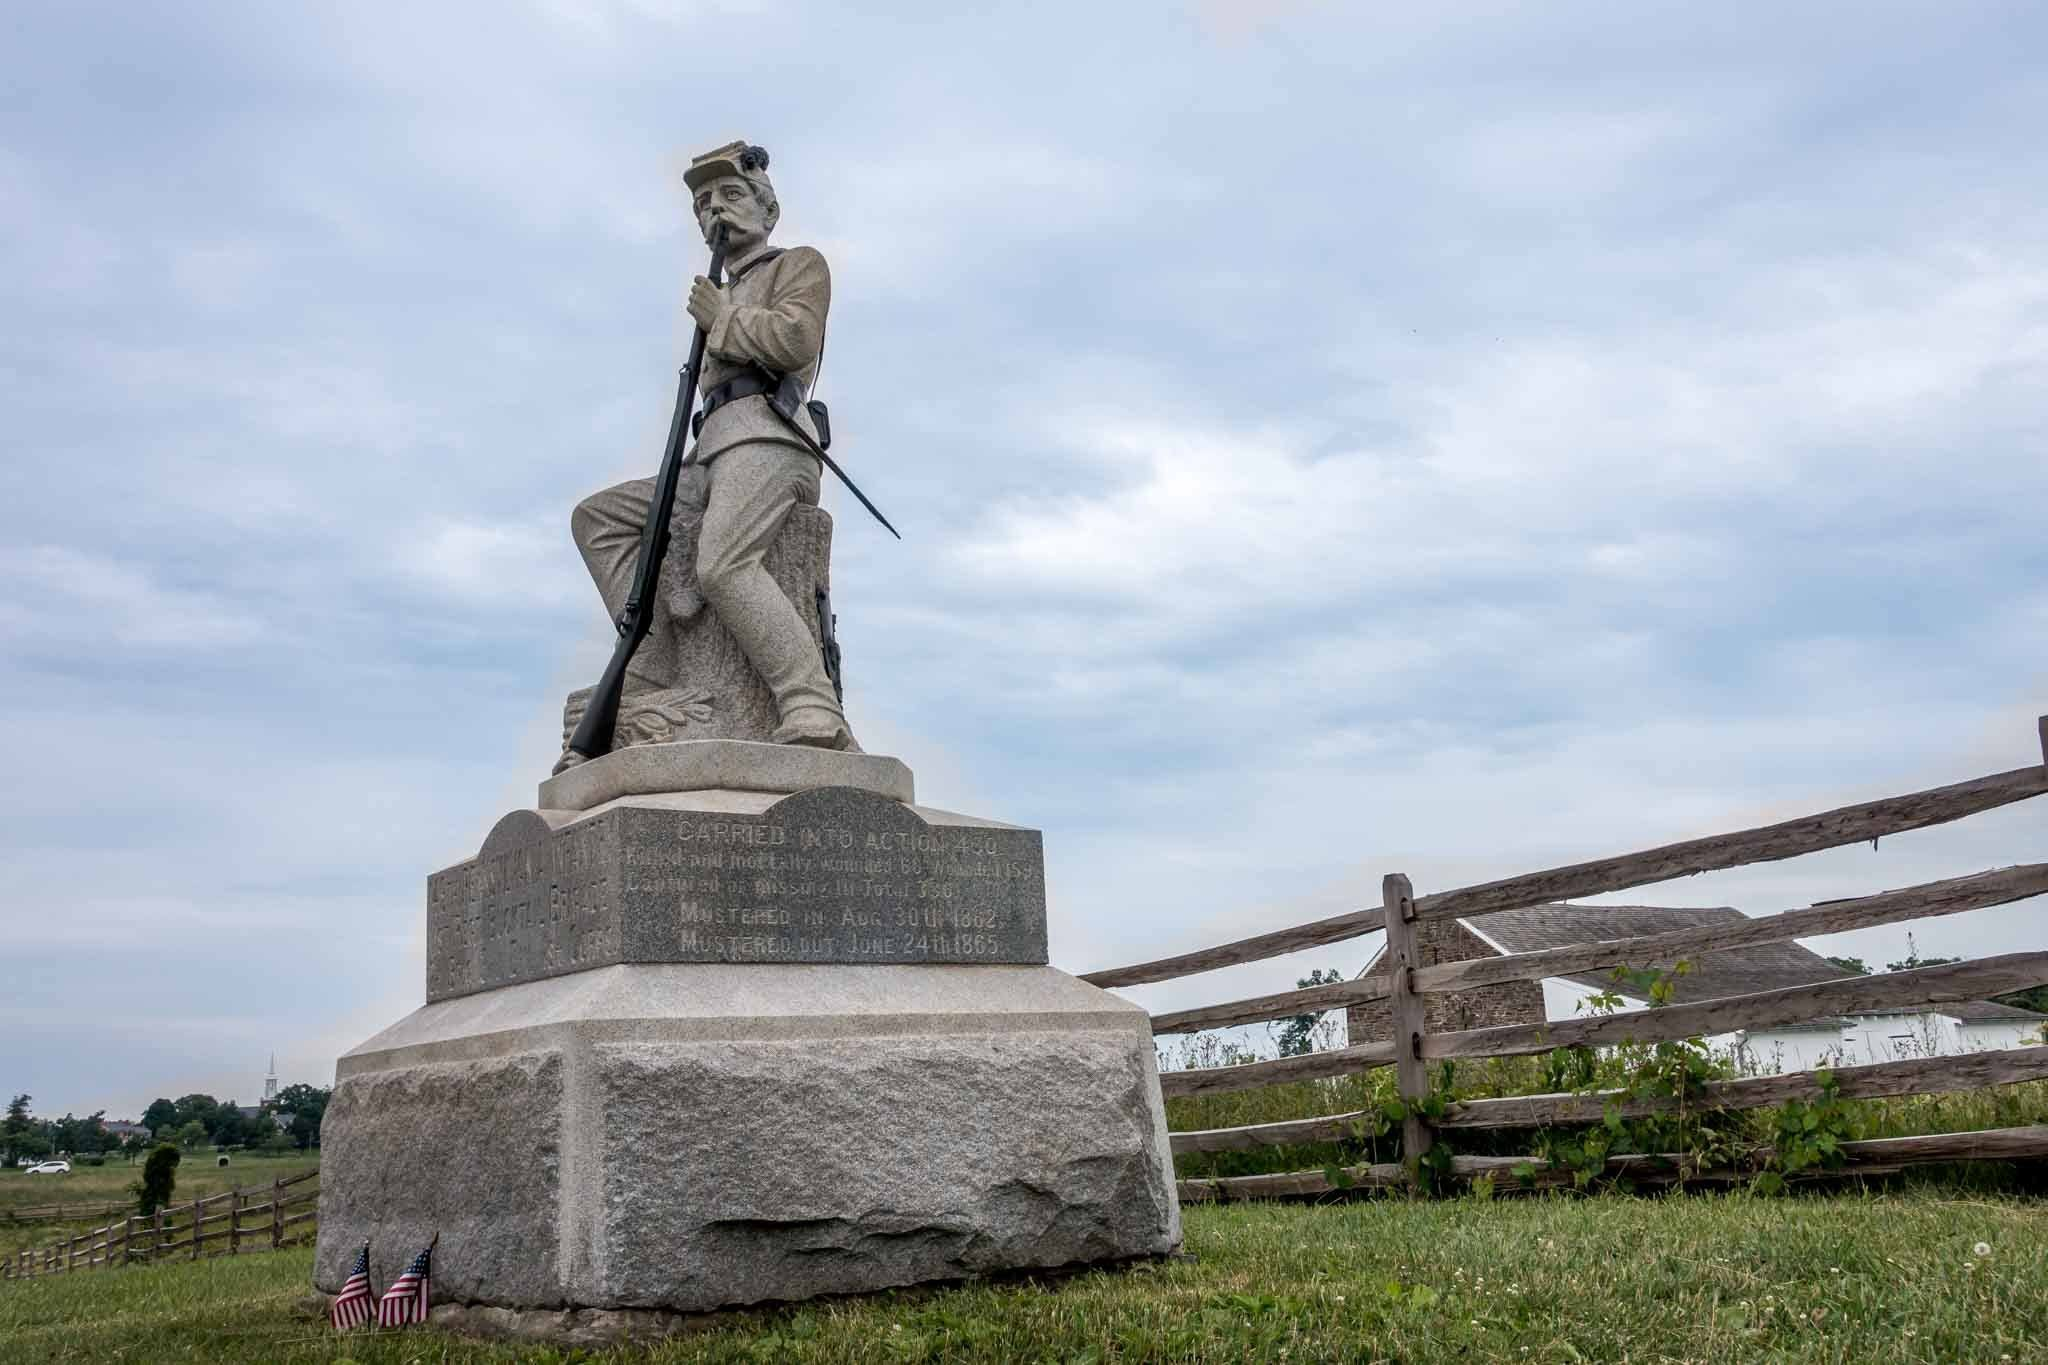 Statue of a soldier on the Civil War battlefield in Gettysburg, Pennsylvania